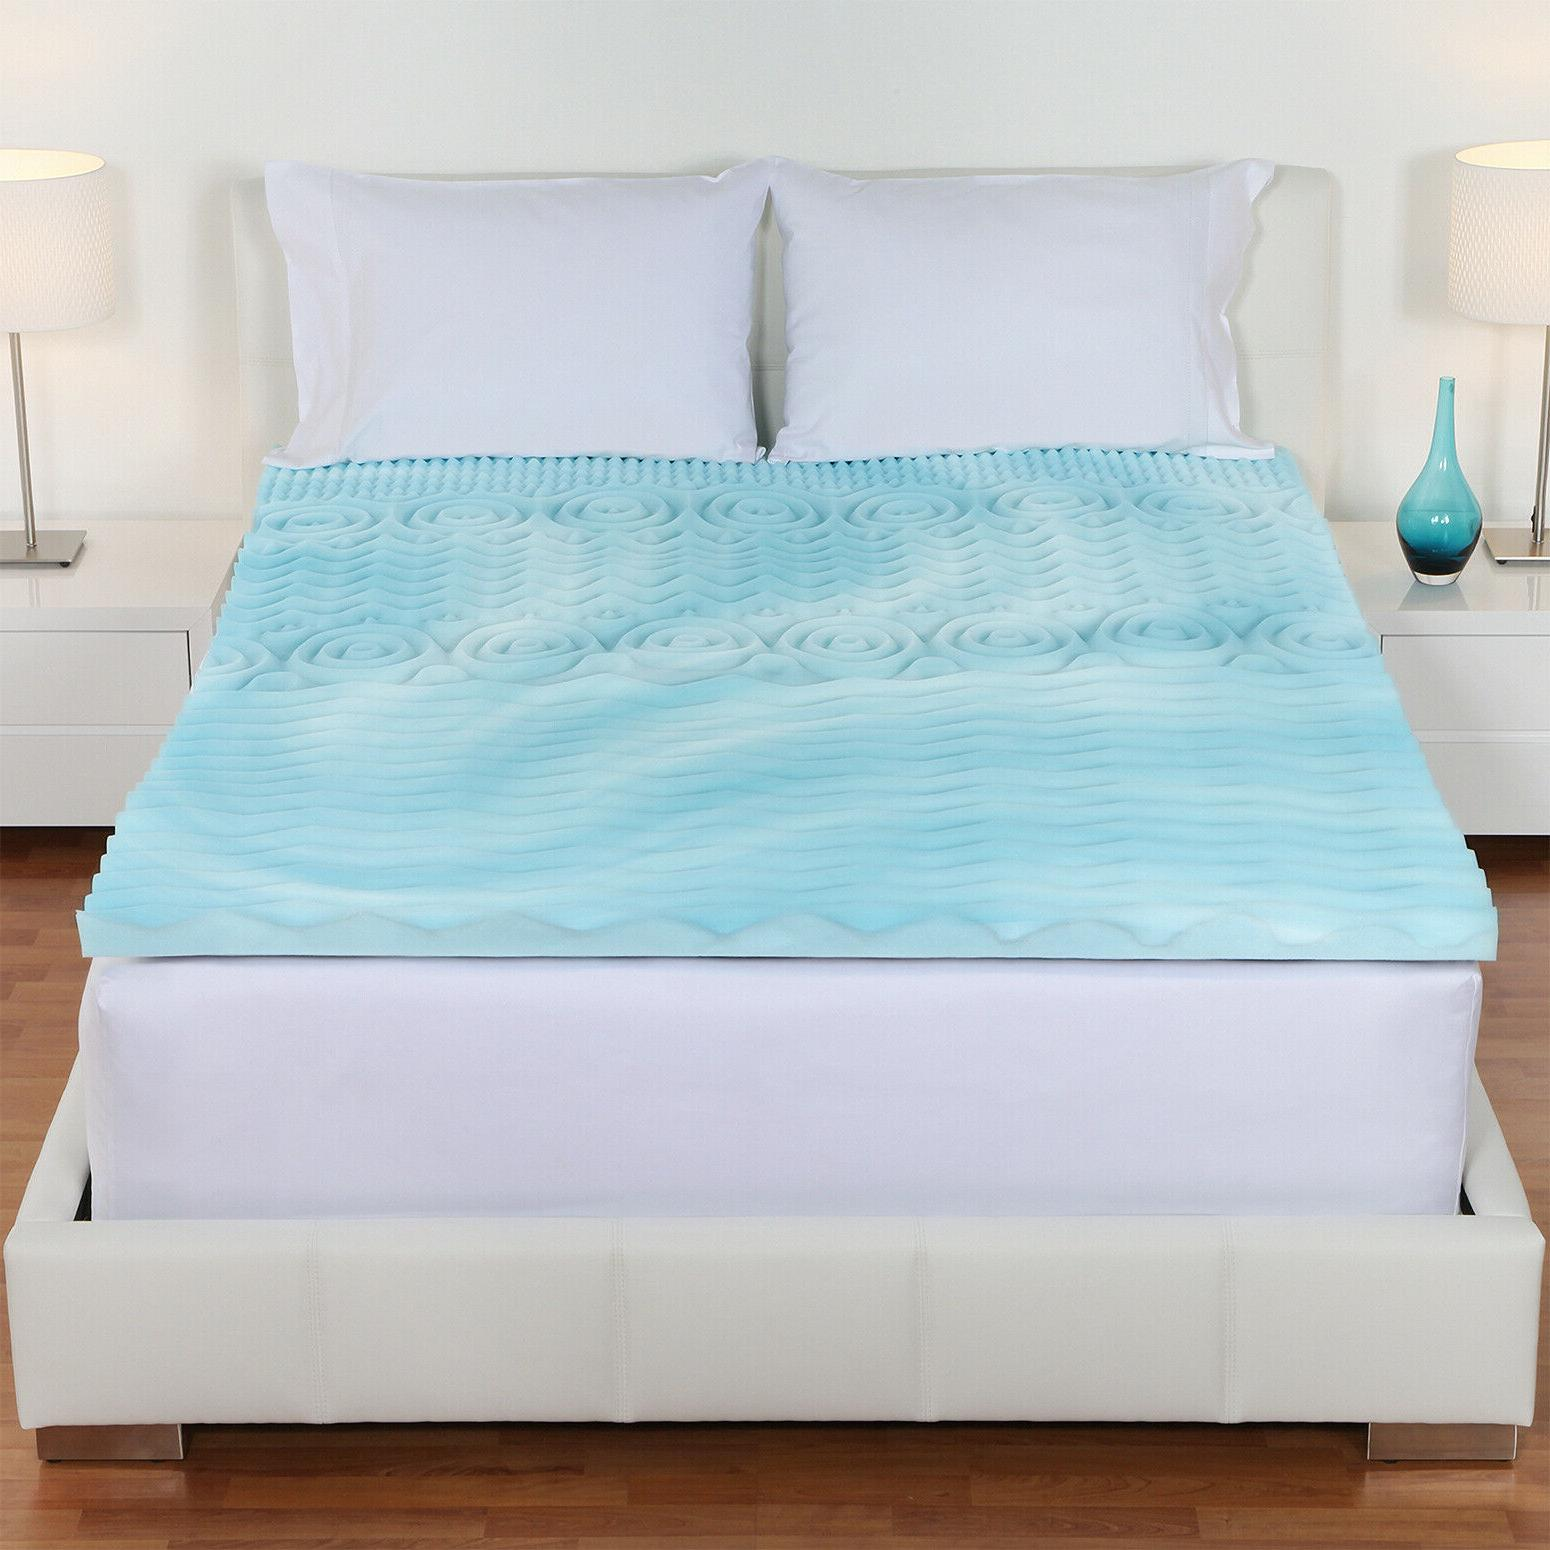 Gel Topper Twin-XL Size Spa Bed